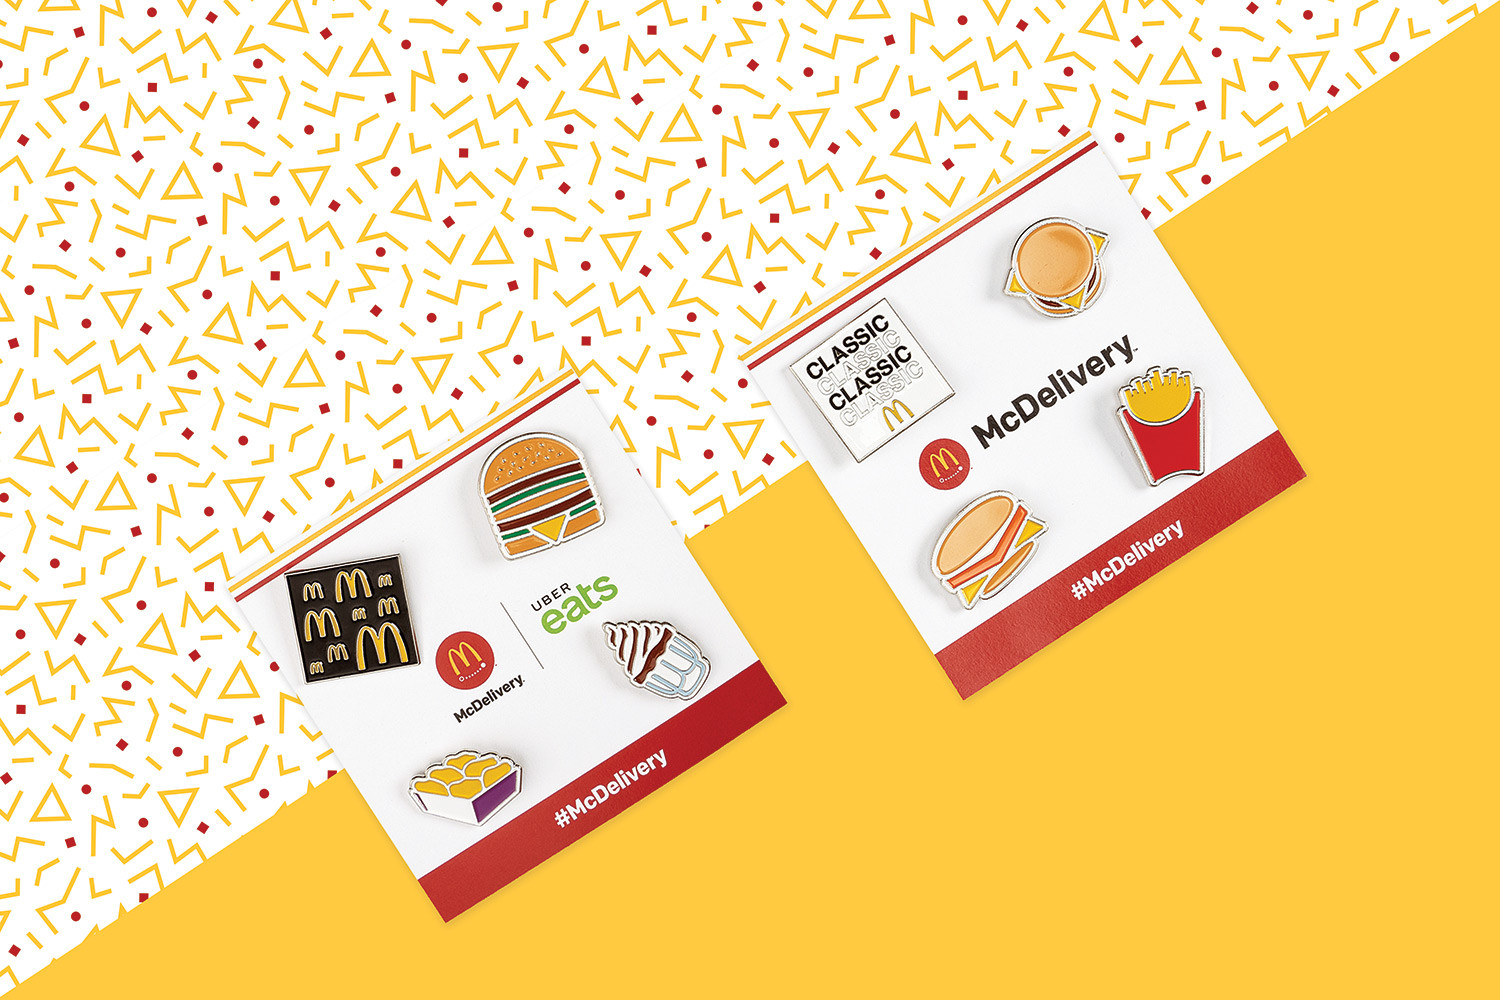 https_%2F%2Fhypebeast.com%2Fimage%2F2018%2F07%2Fmcdonalds-global-mcdelivery-day-collection-4.jpg